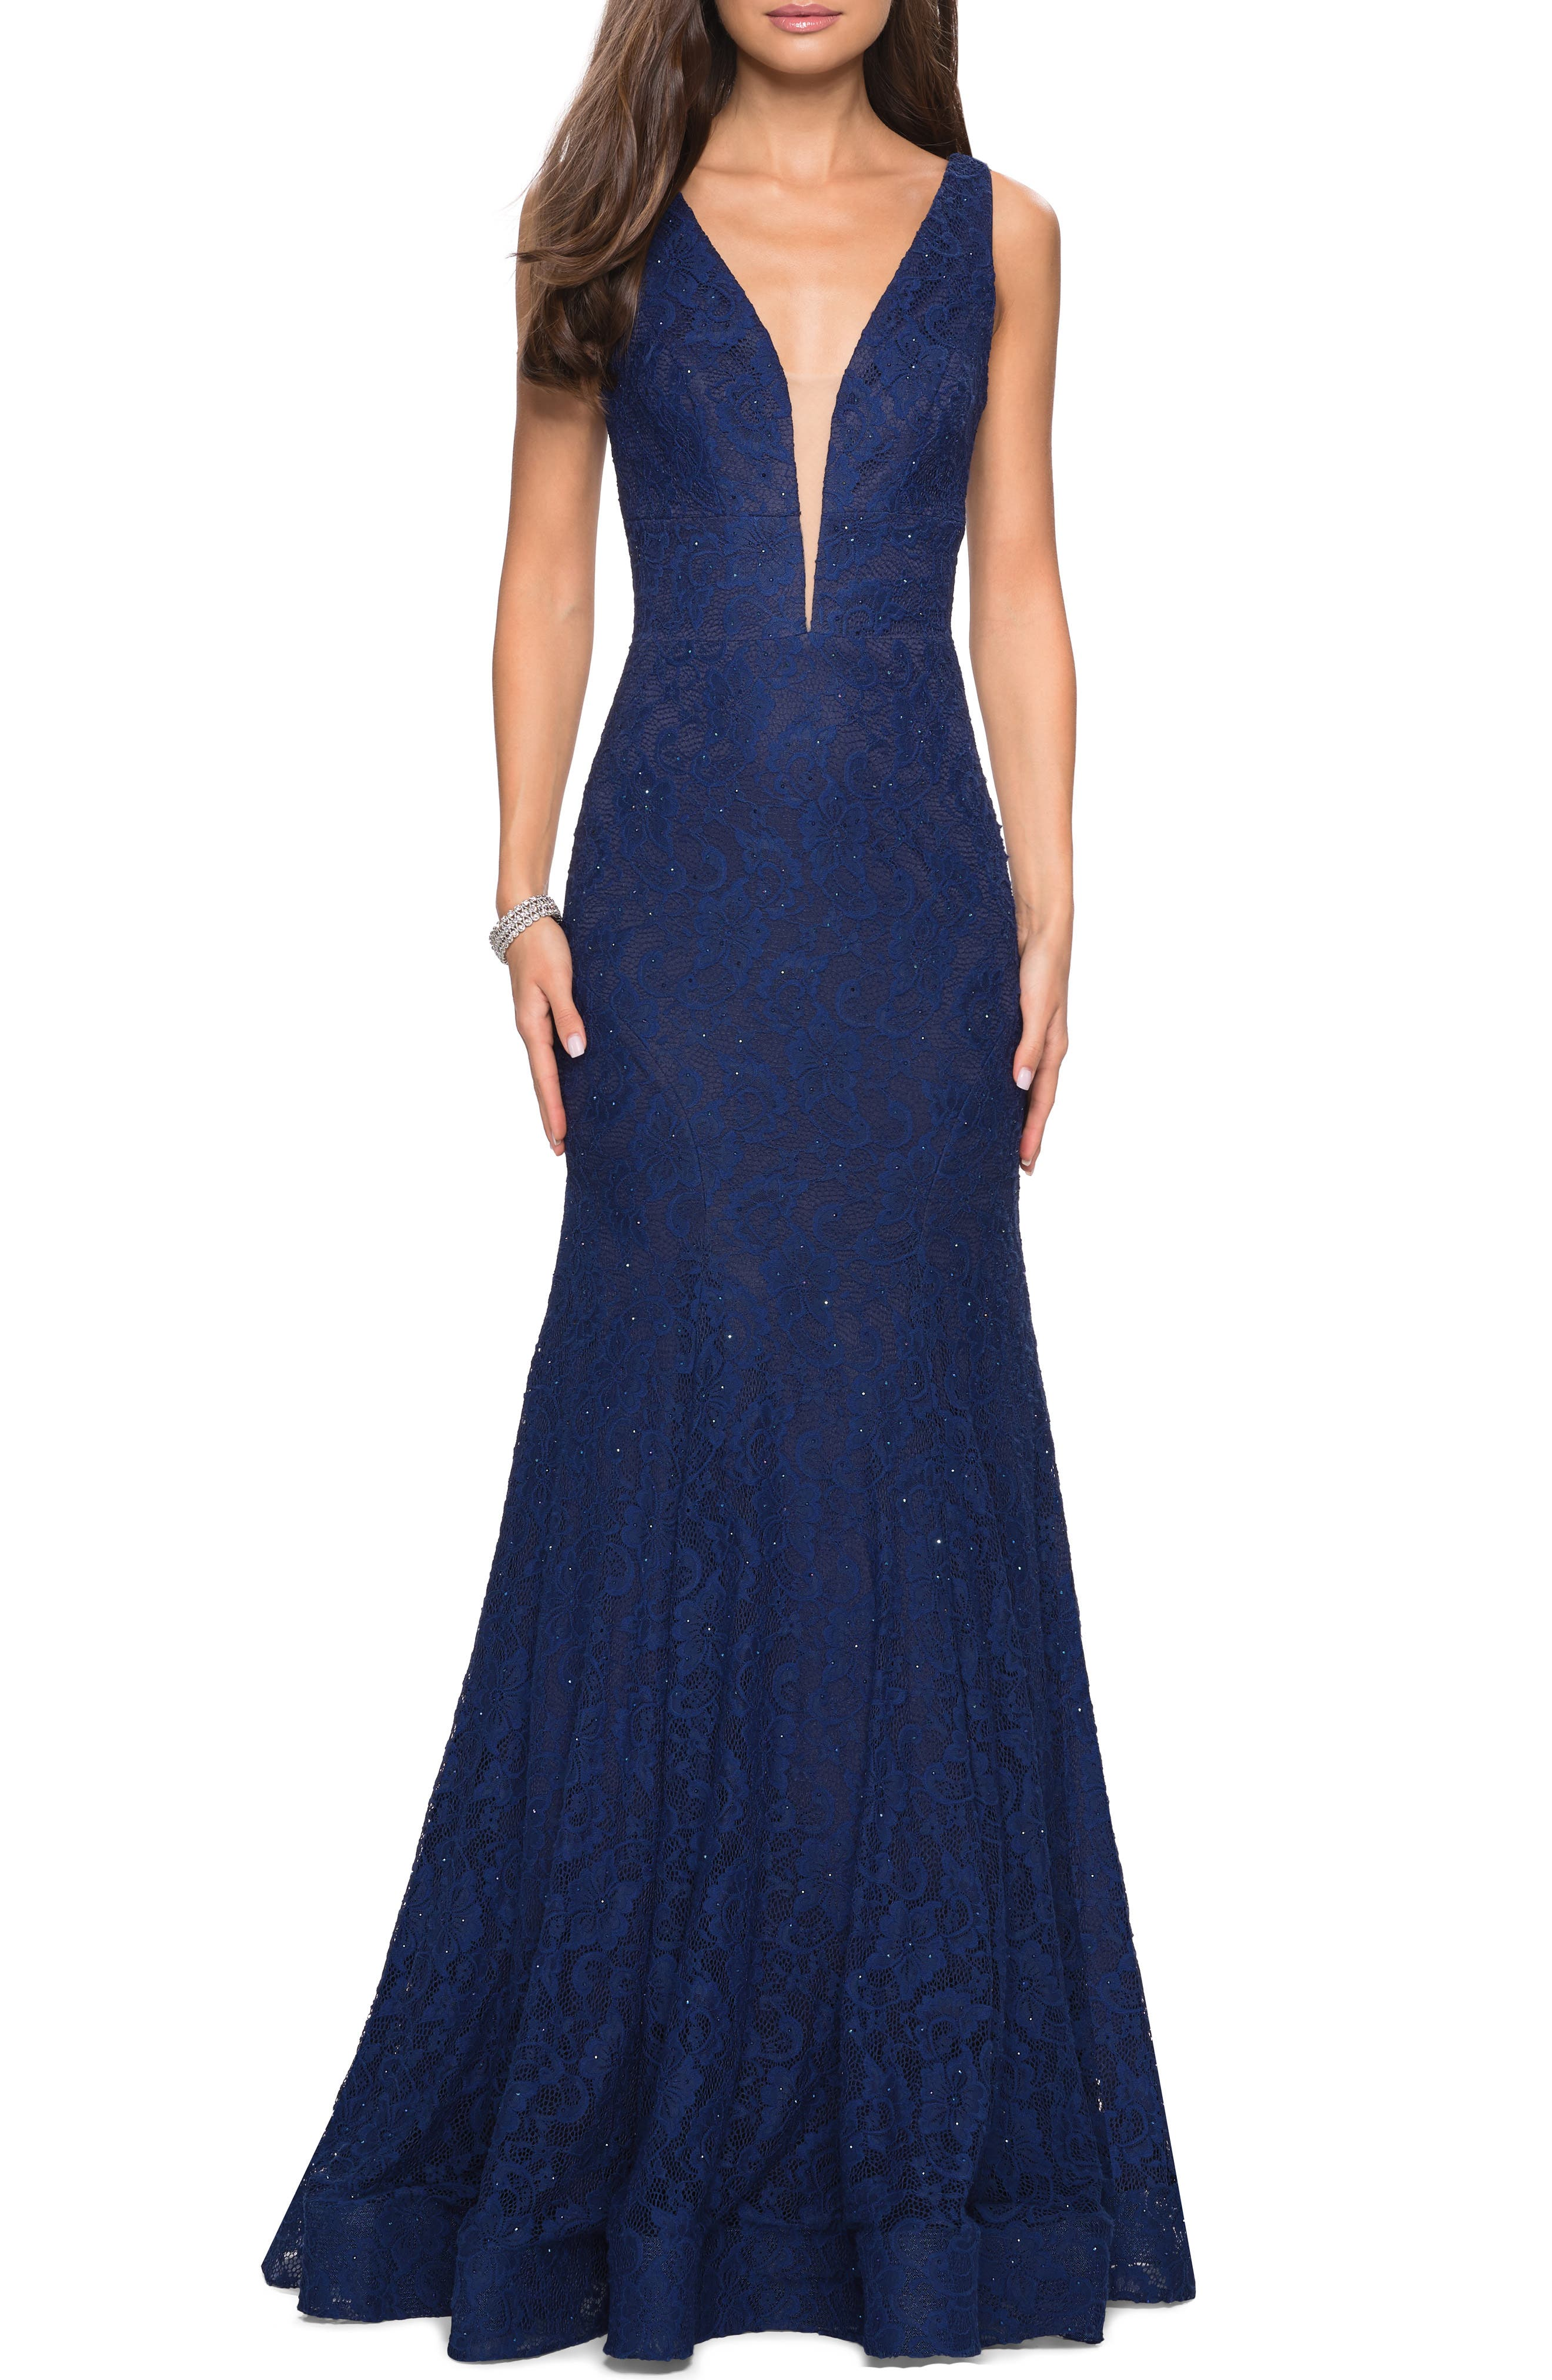 La Femme Plunge Neck Lace Evening Dress With Train, Blue